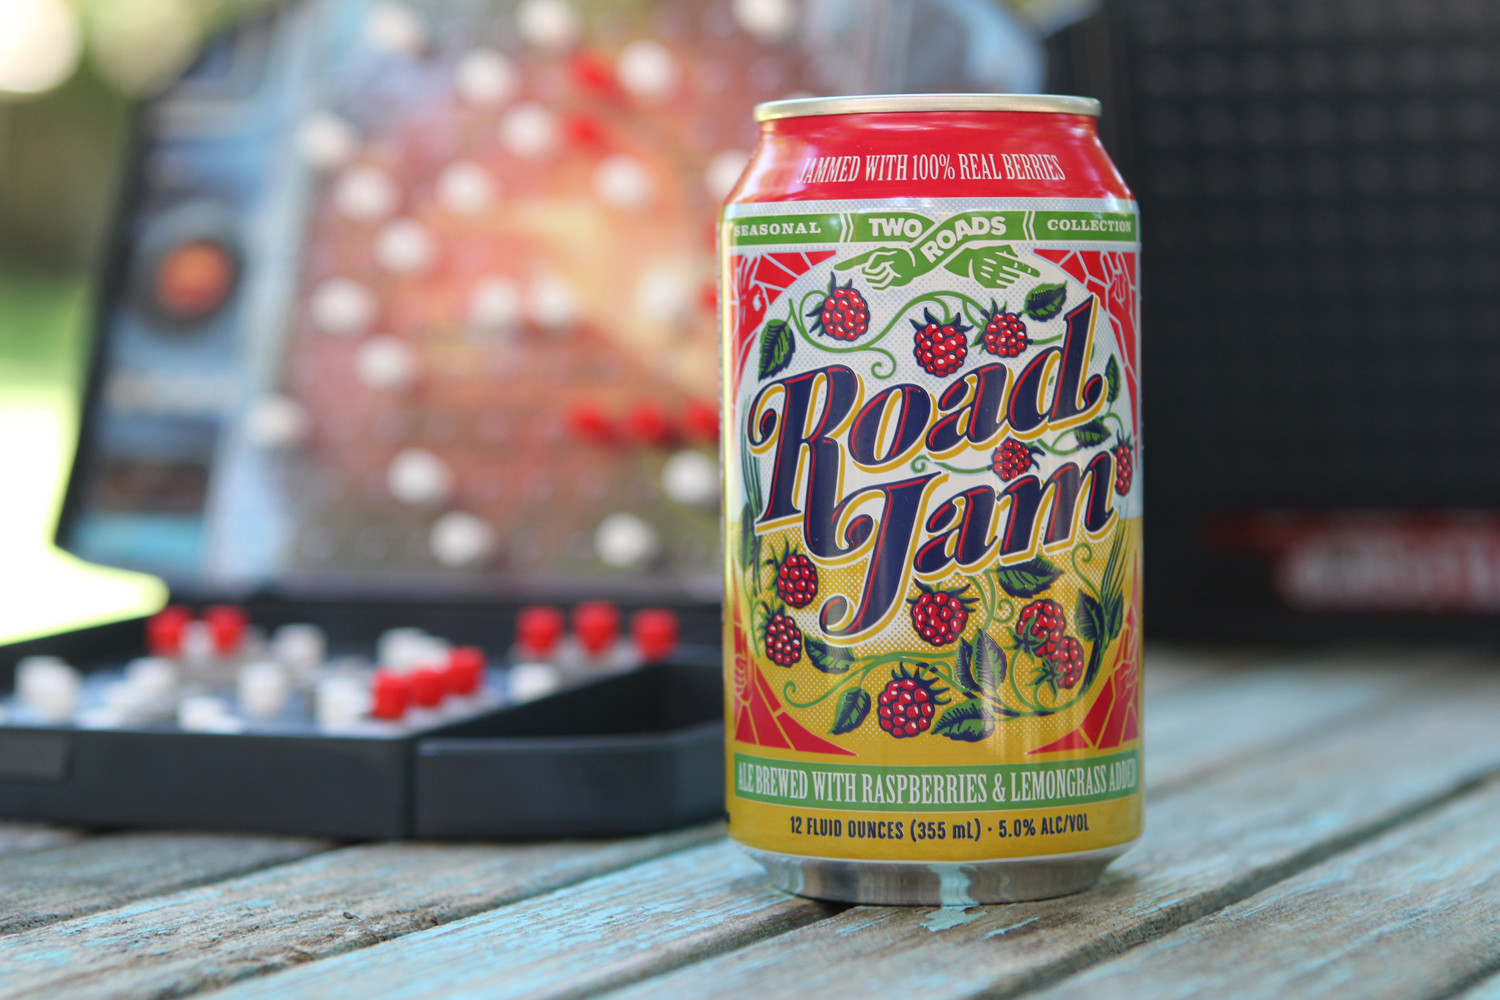 Road Jam summer beer from Two Roads Brewing is a fruit berry beer.